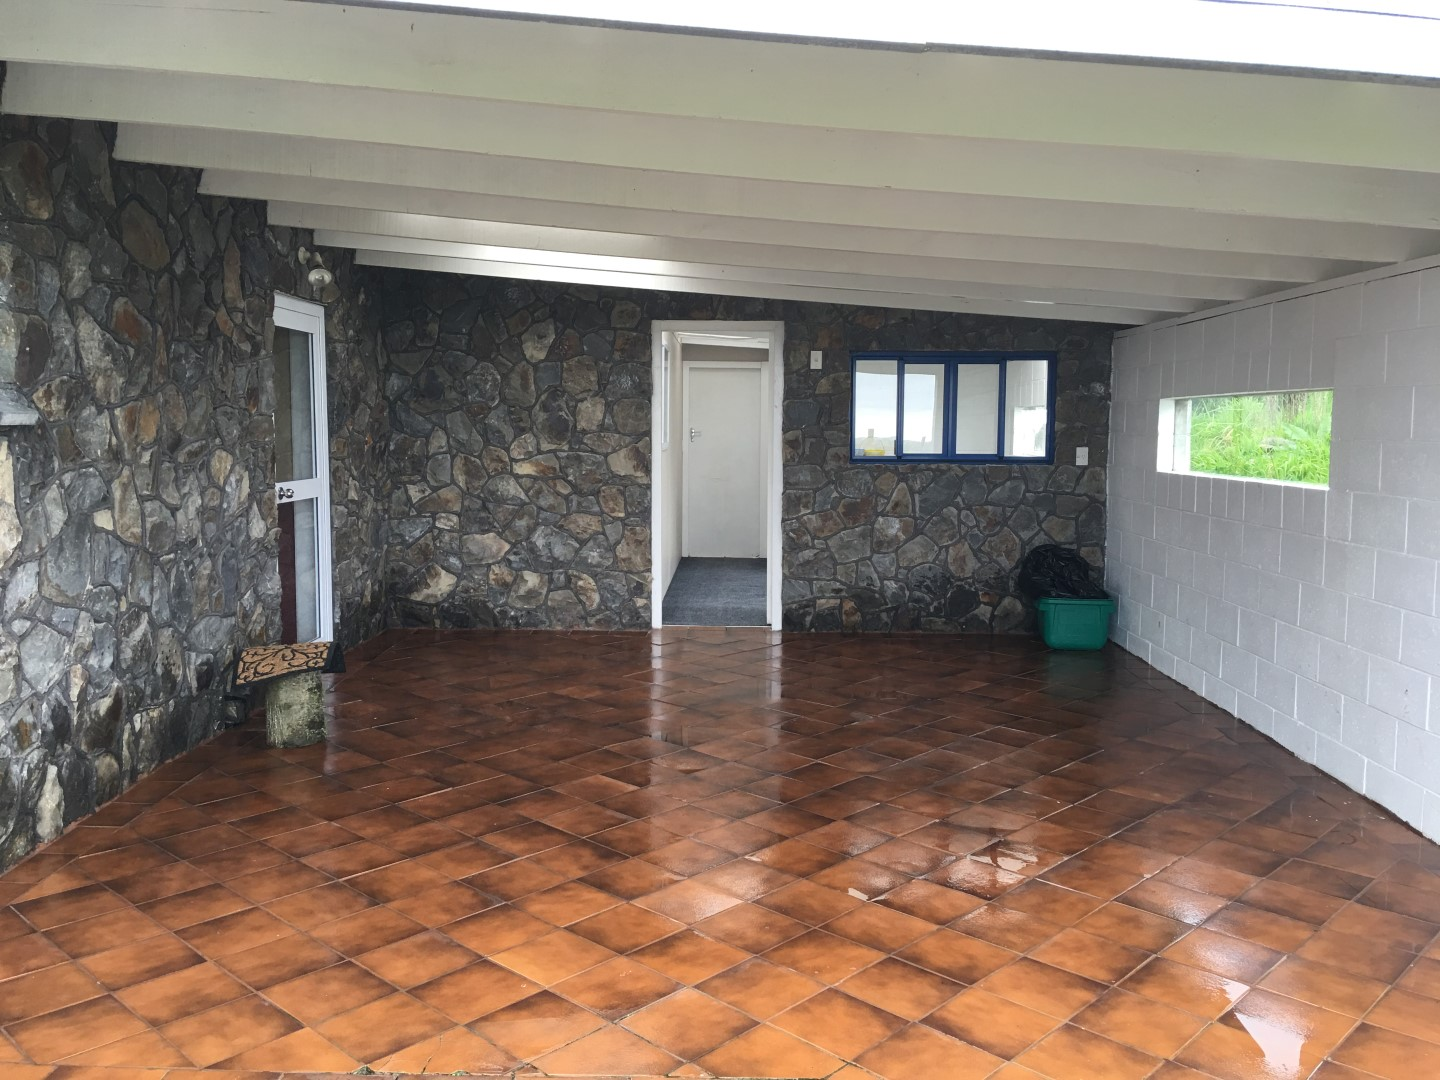 Carport and Garage Cleaning